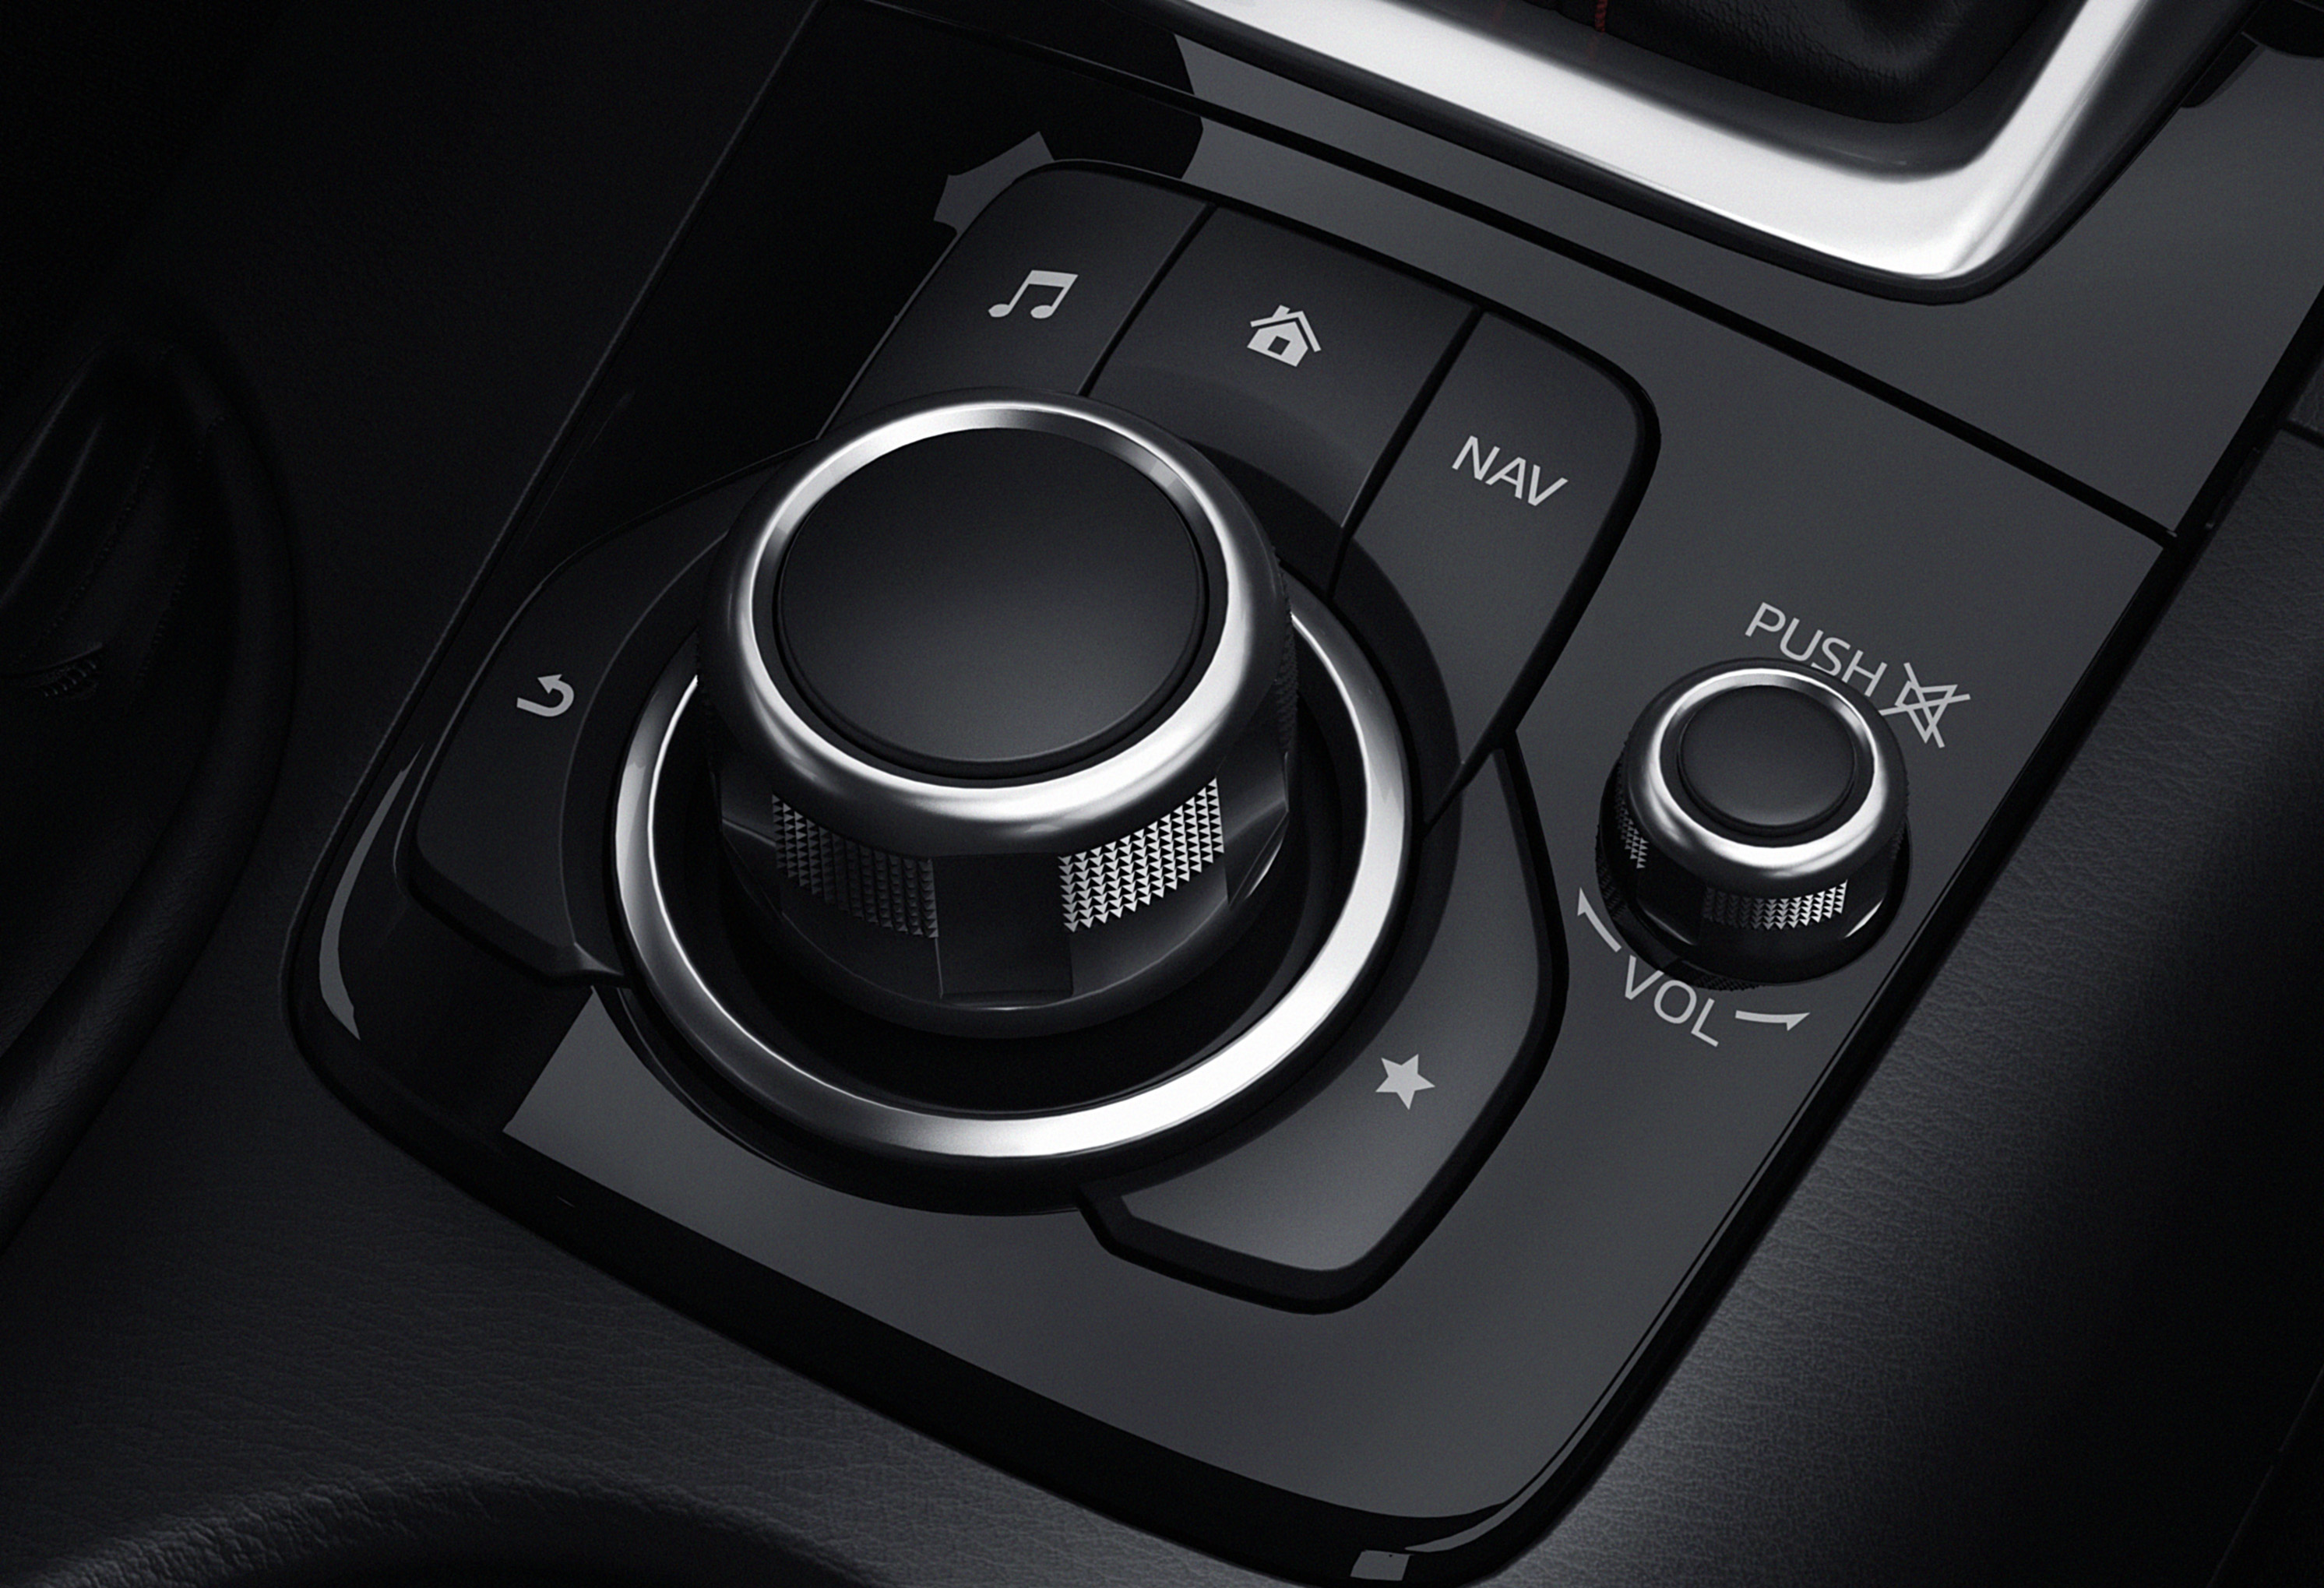 Mazda 3 Owners Manual: Commander switch operation